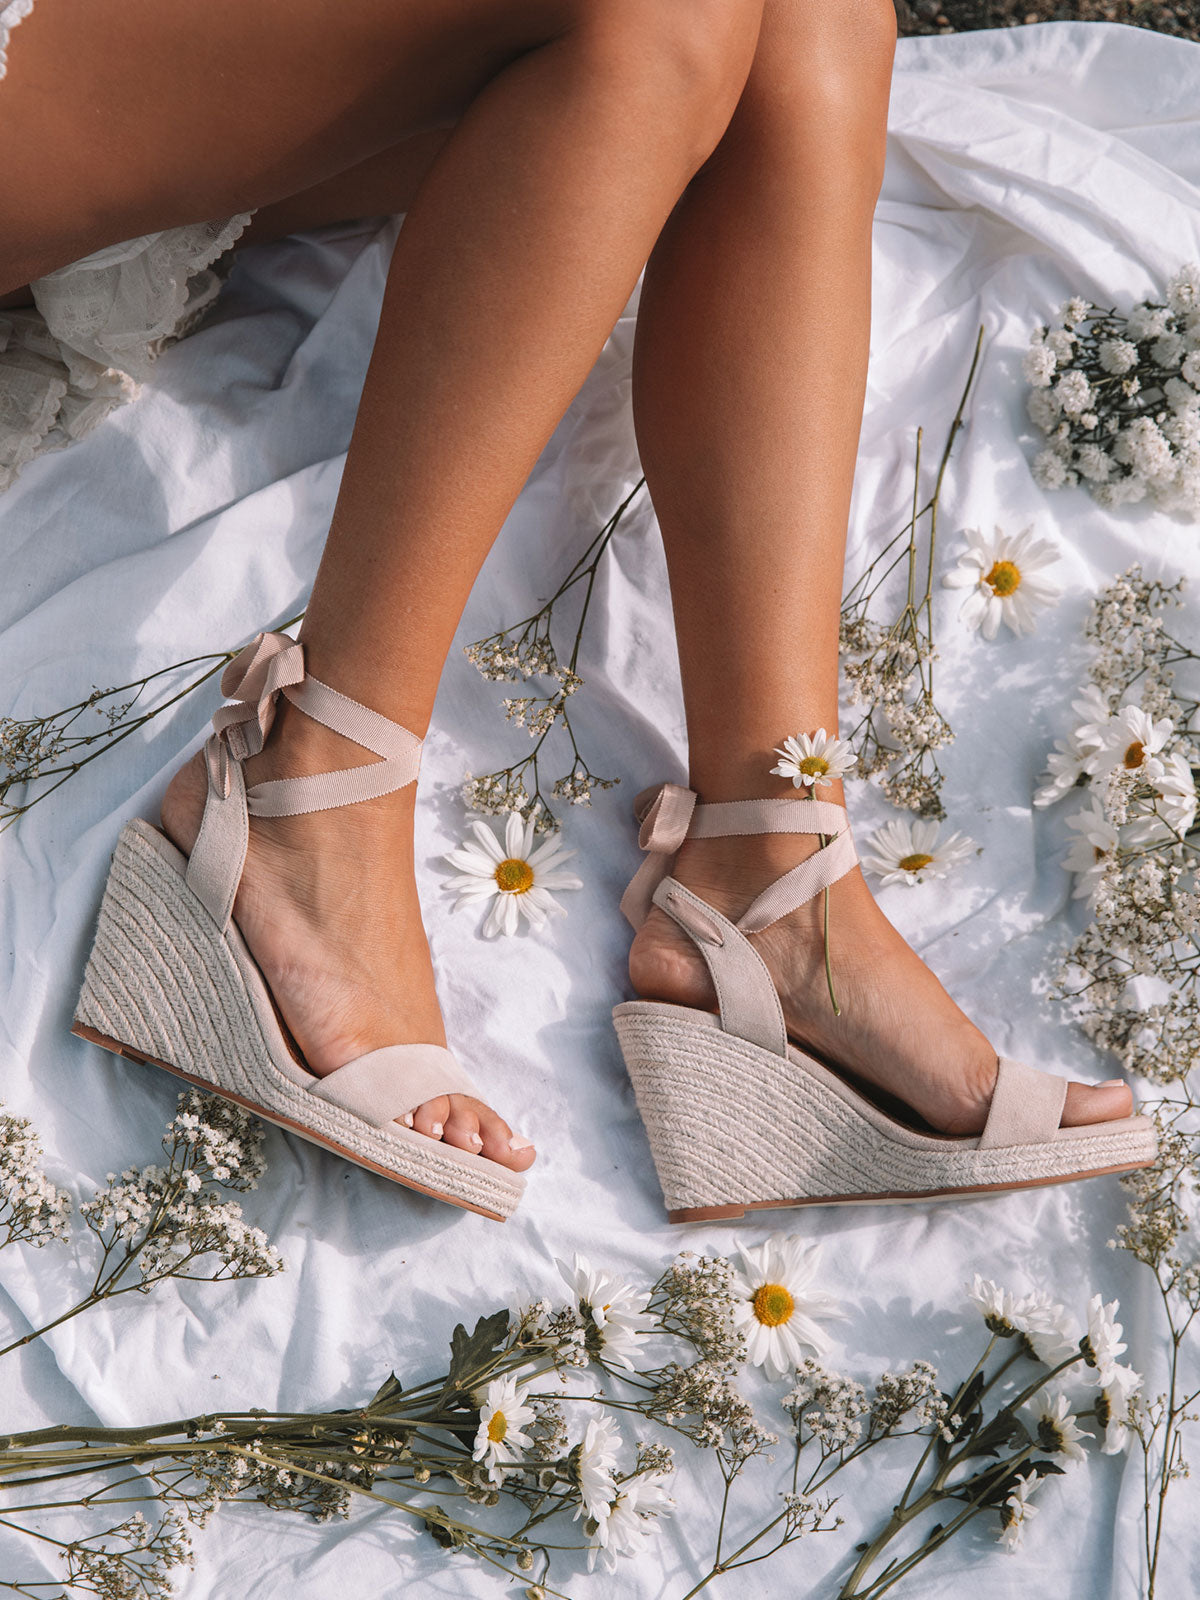 15 Things All Brides Regret After Buying Their Wedding Shoes